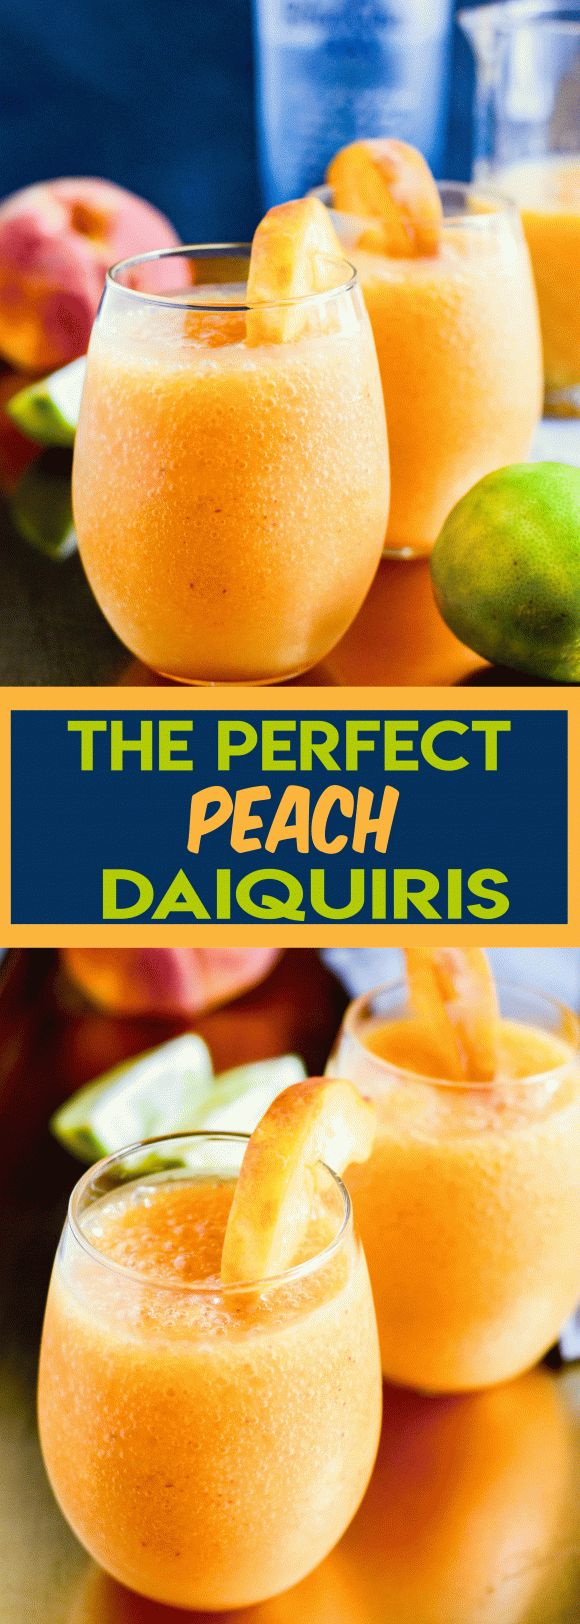 With Labor Day coming up, you can never have too many cocktail recipes in your arsenal. These The Perfect Peach Daiquiris will be the hit of your party!